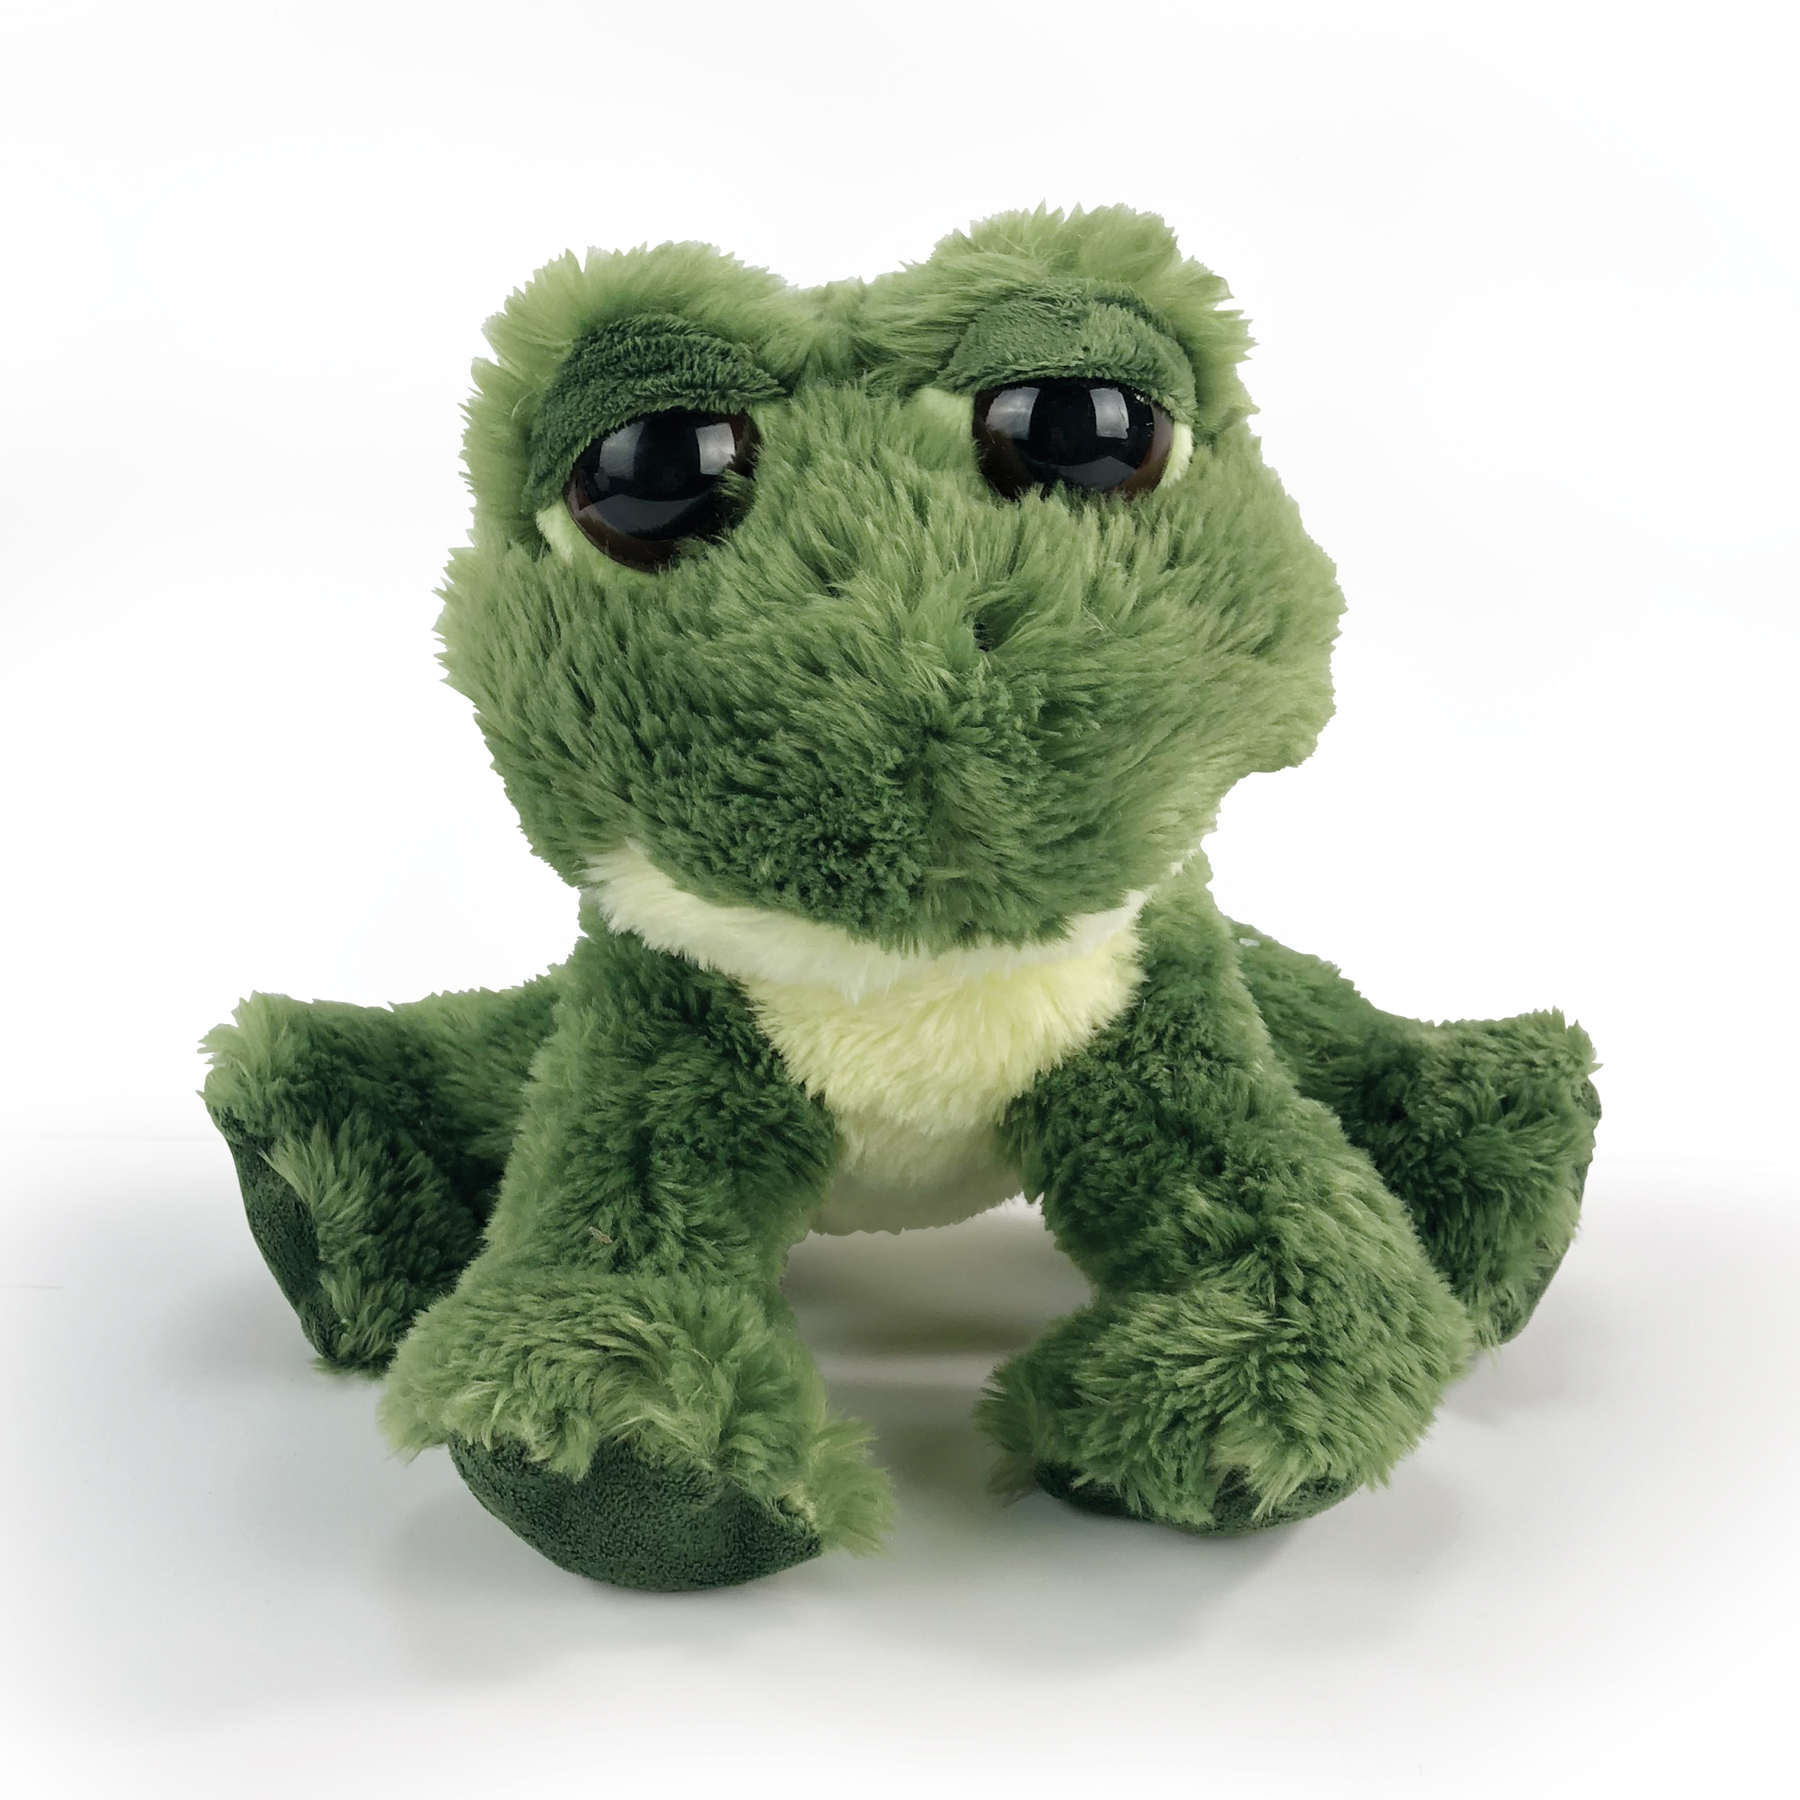 Plush Frog Toy | Stuffed Frog